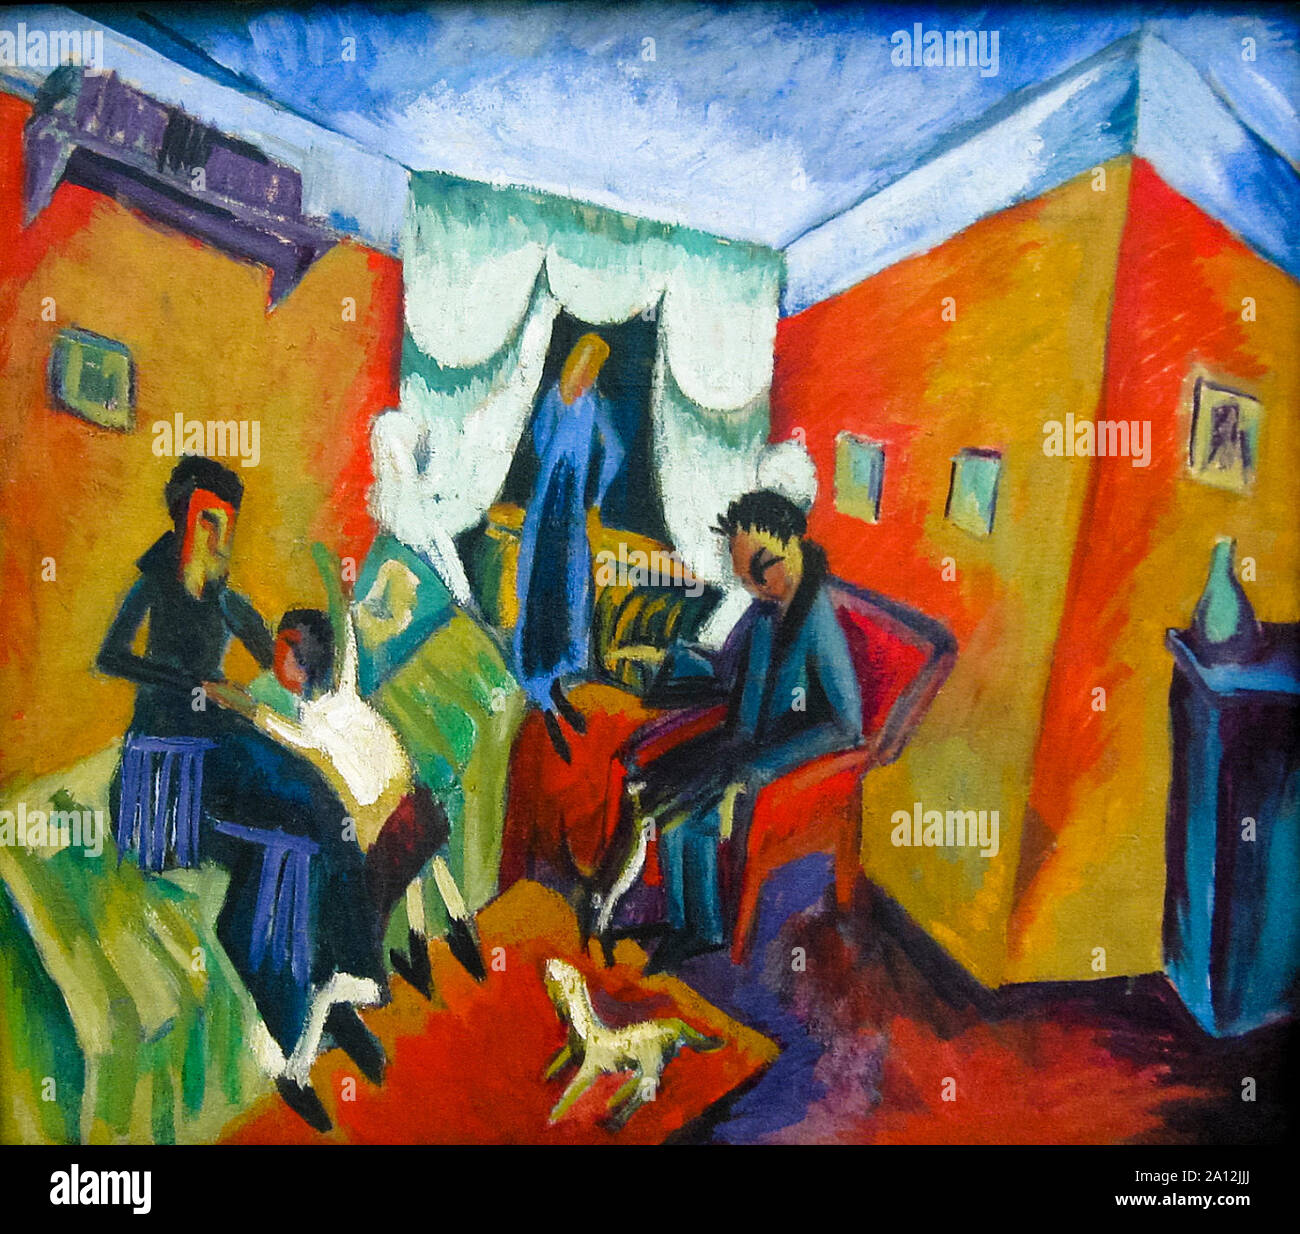 Ernst Ludwig Kirchner, Interieur, (Interior), painting, 1915 Stock Photo